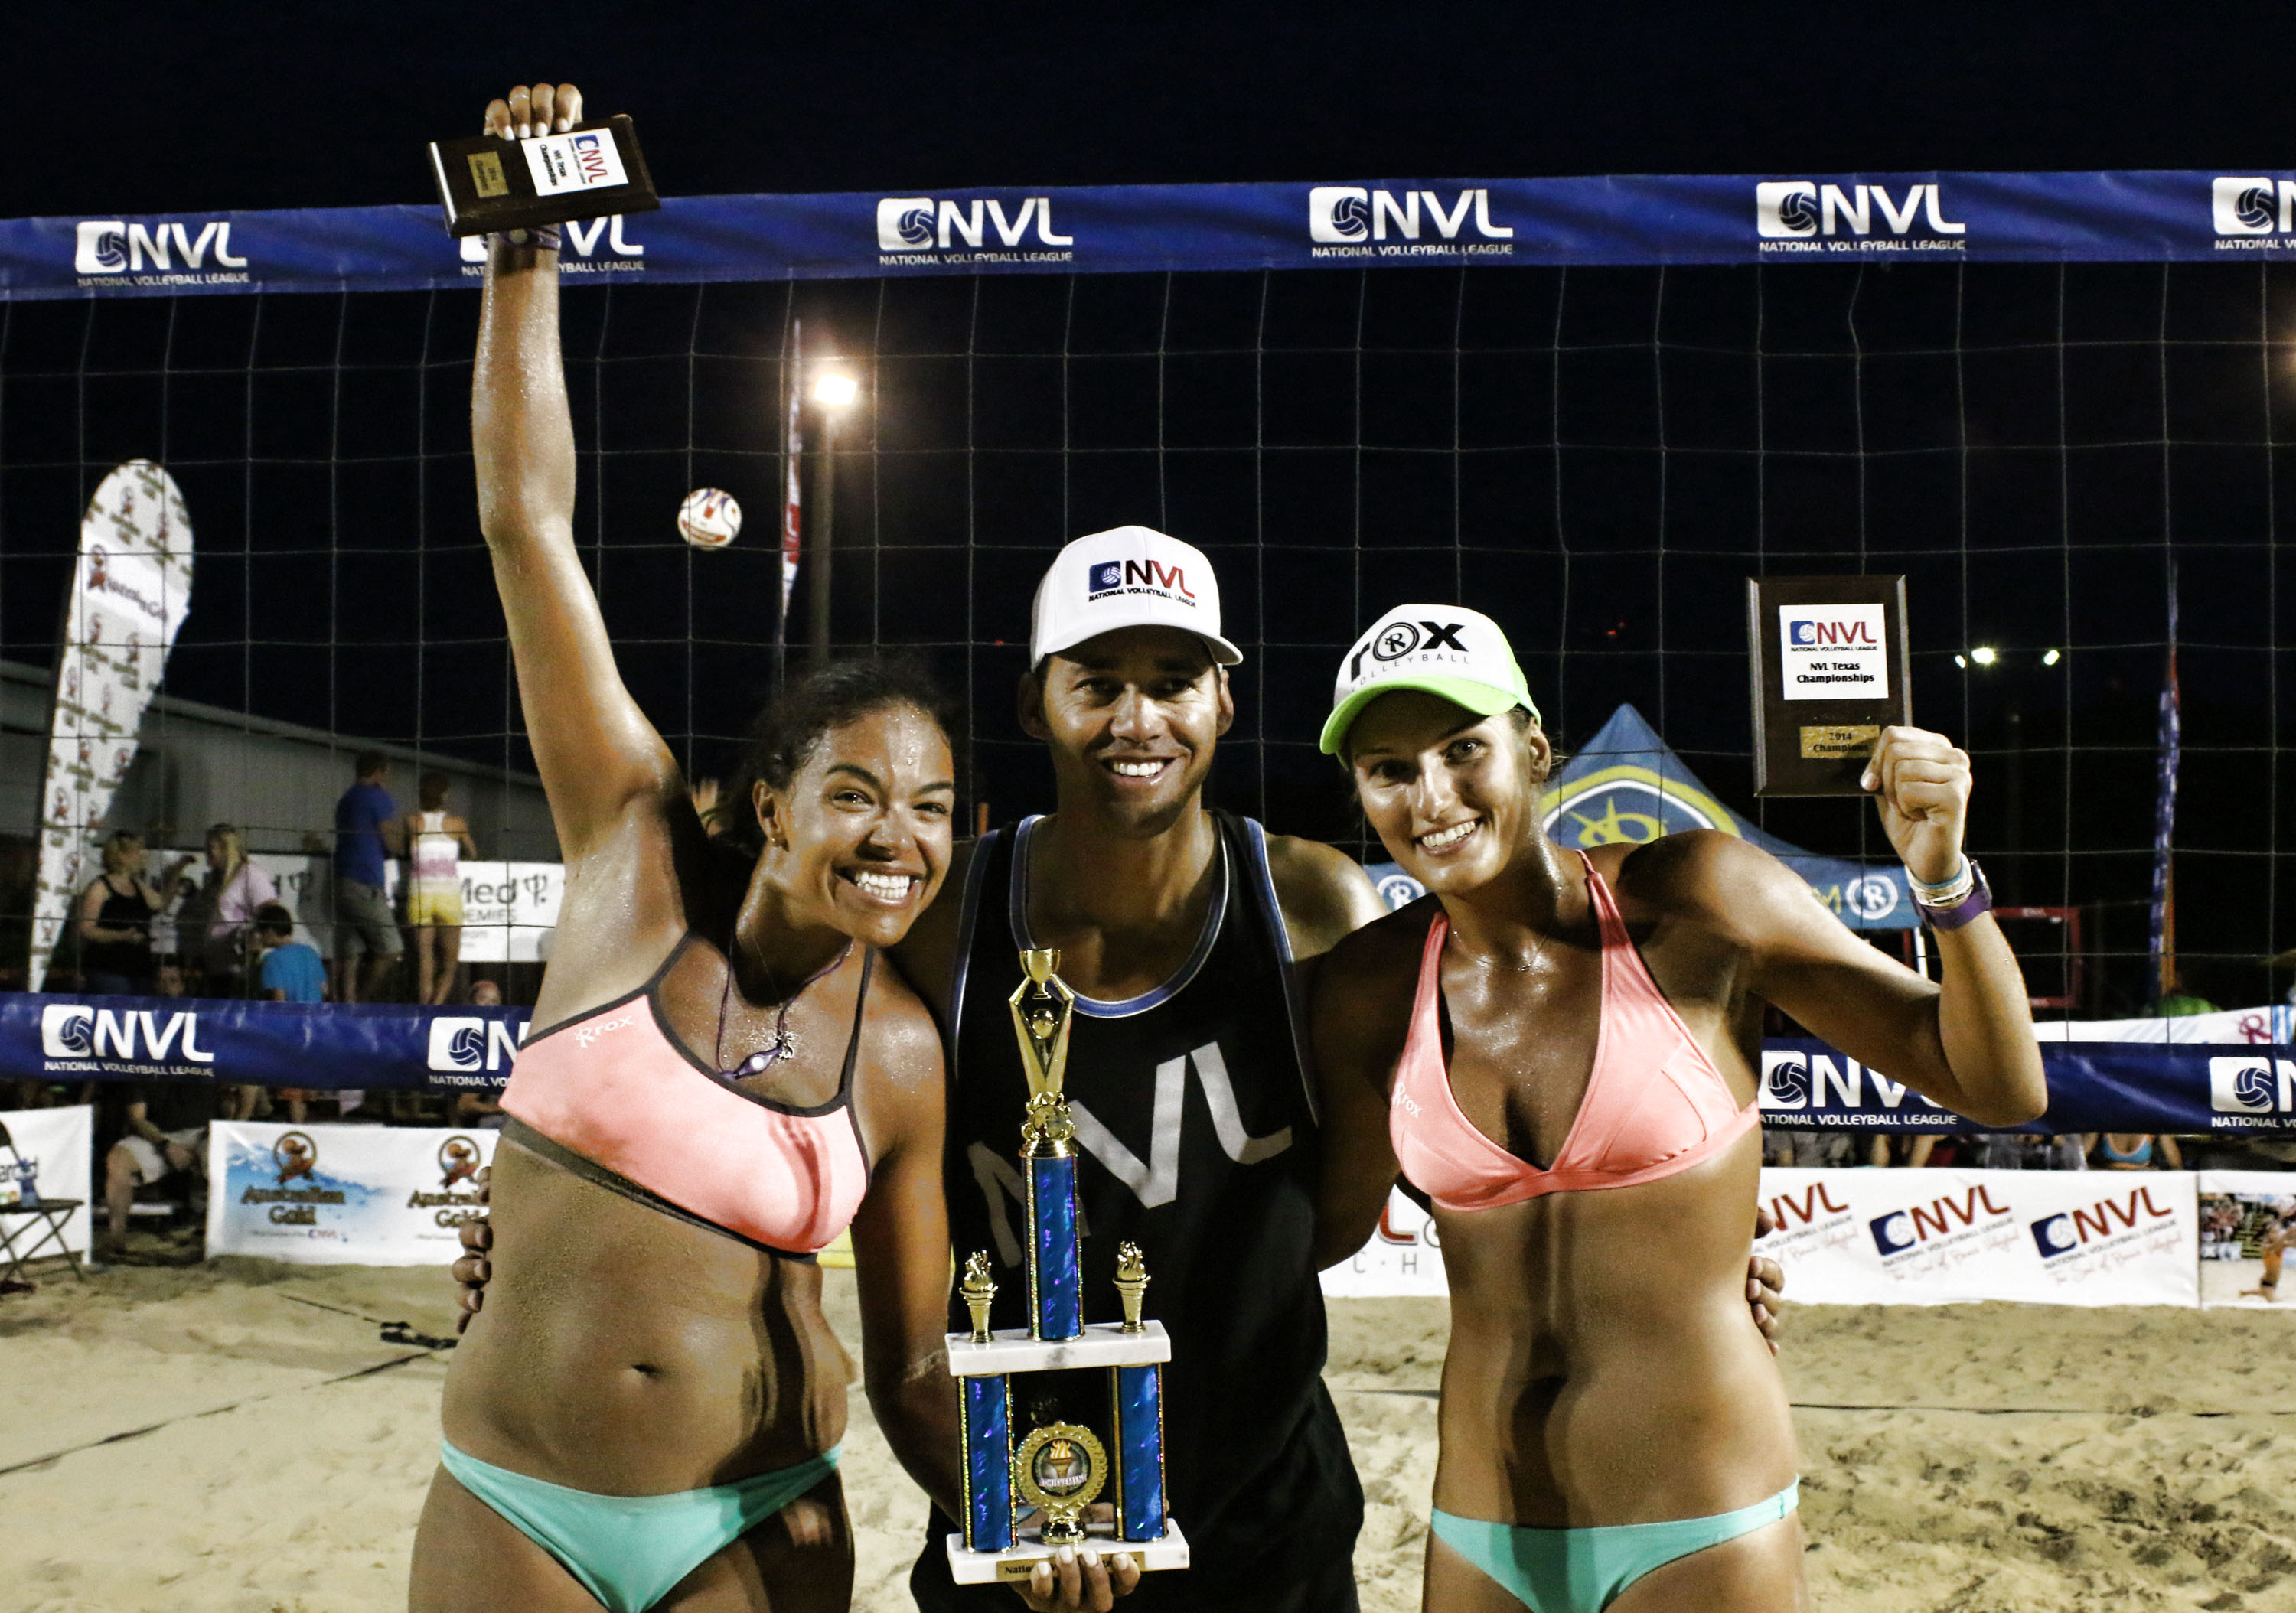 Josh Binstock and Sam Schachter Win NVL Opener in Dallas, TX;  Pri Piantadosi-Lima and Karolina Sowala Take Women's Title